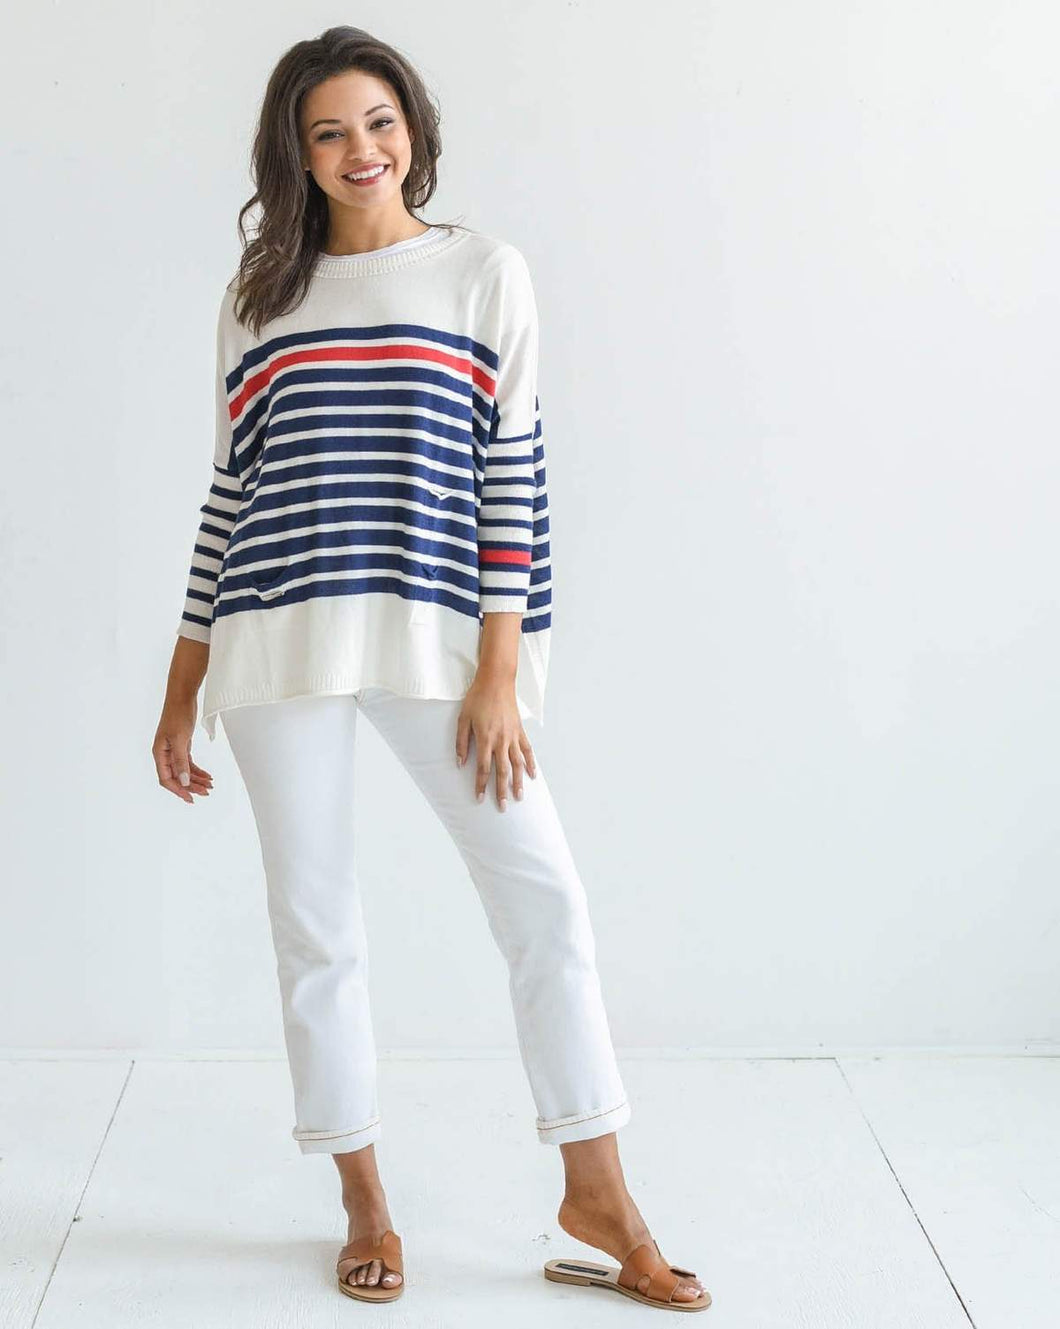 Mer|Sea The Catalina Sweater - Stripped Navy/Red